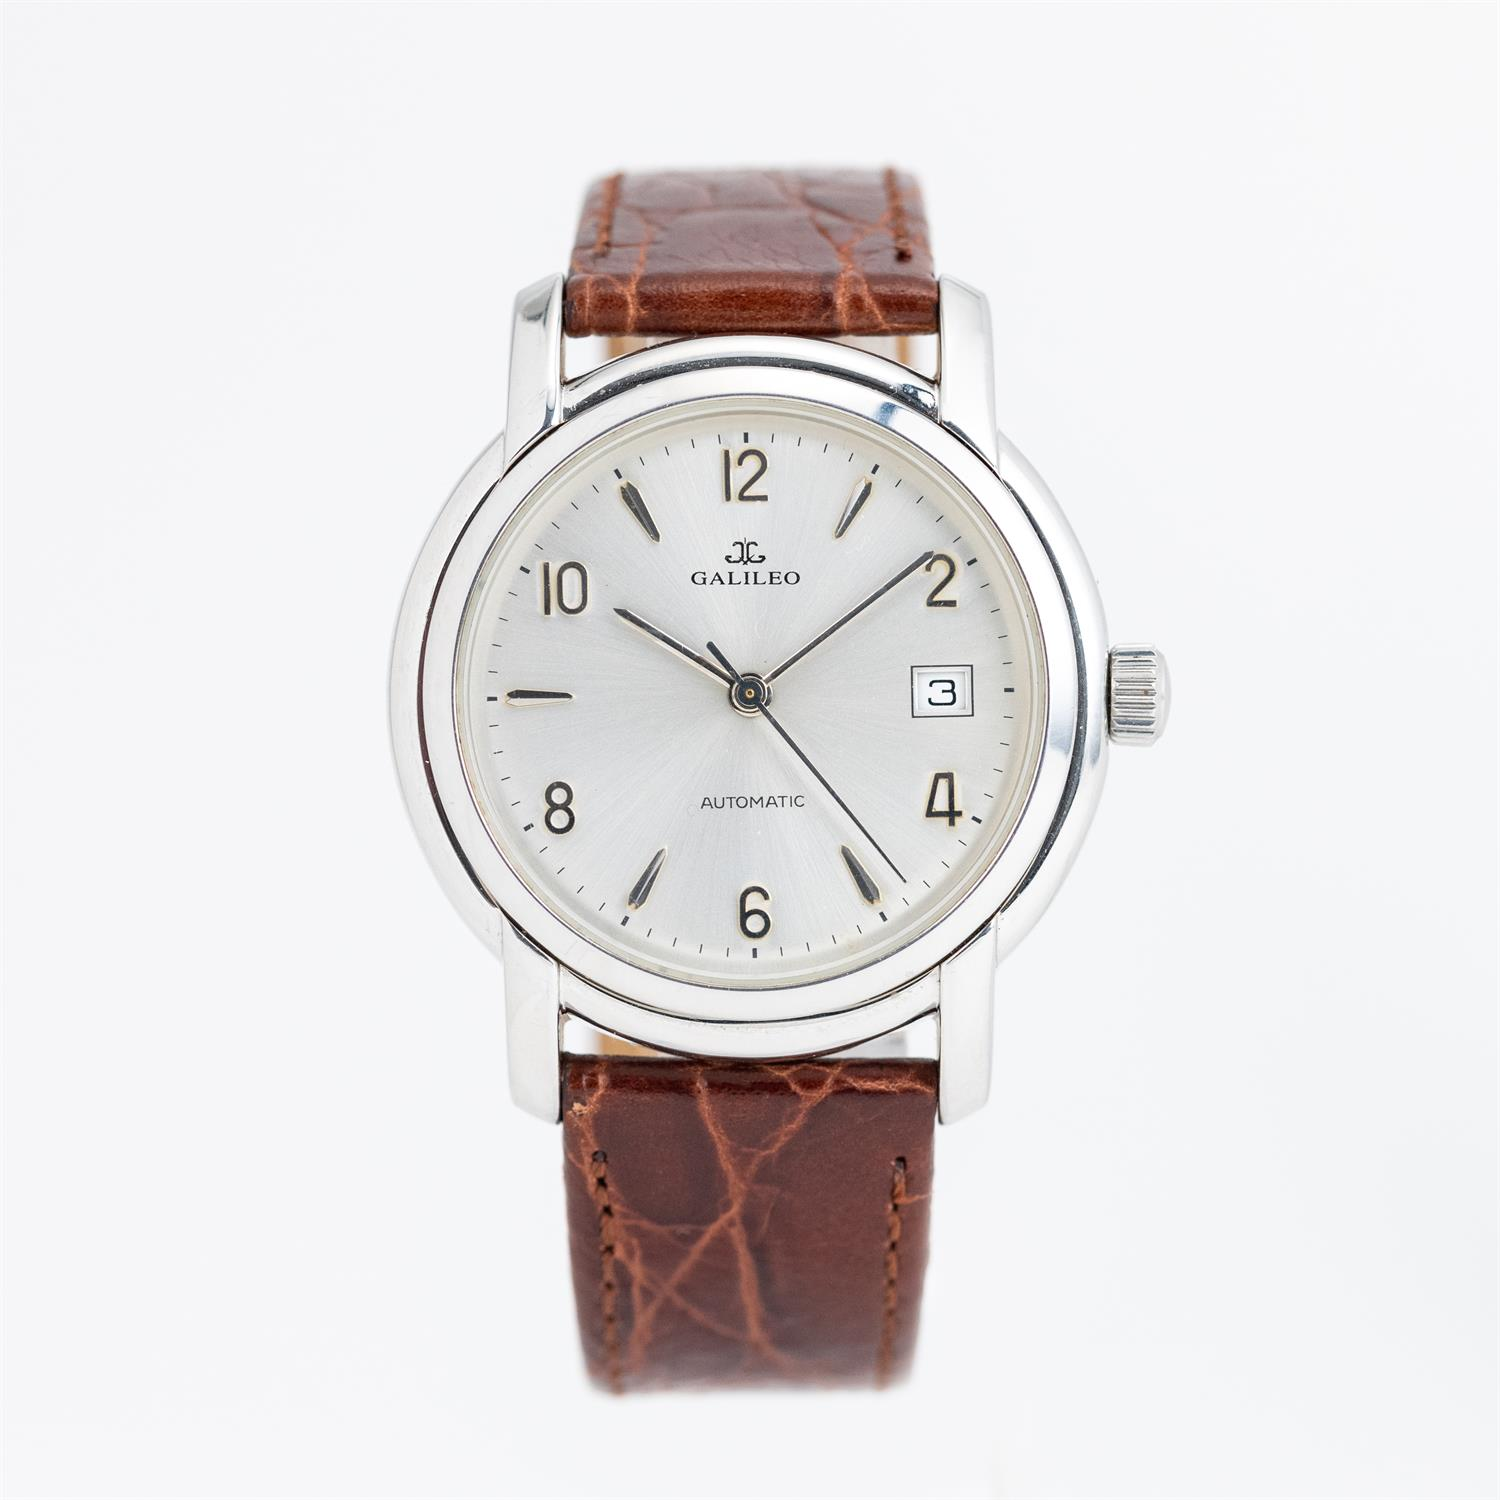 Galileo Stainless Steel Automatic